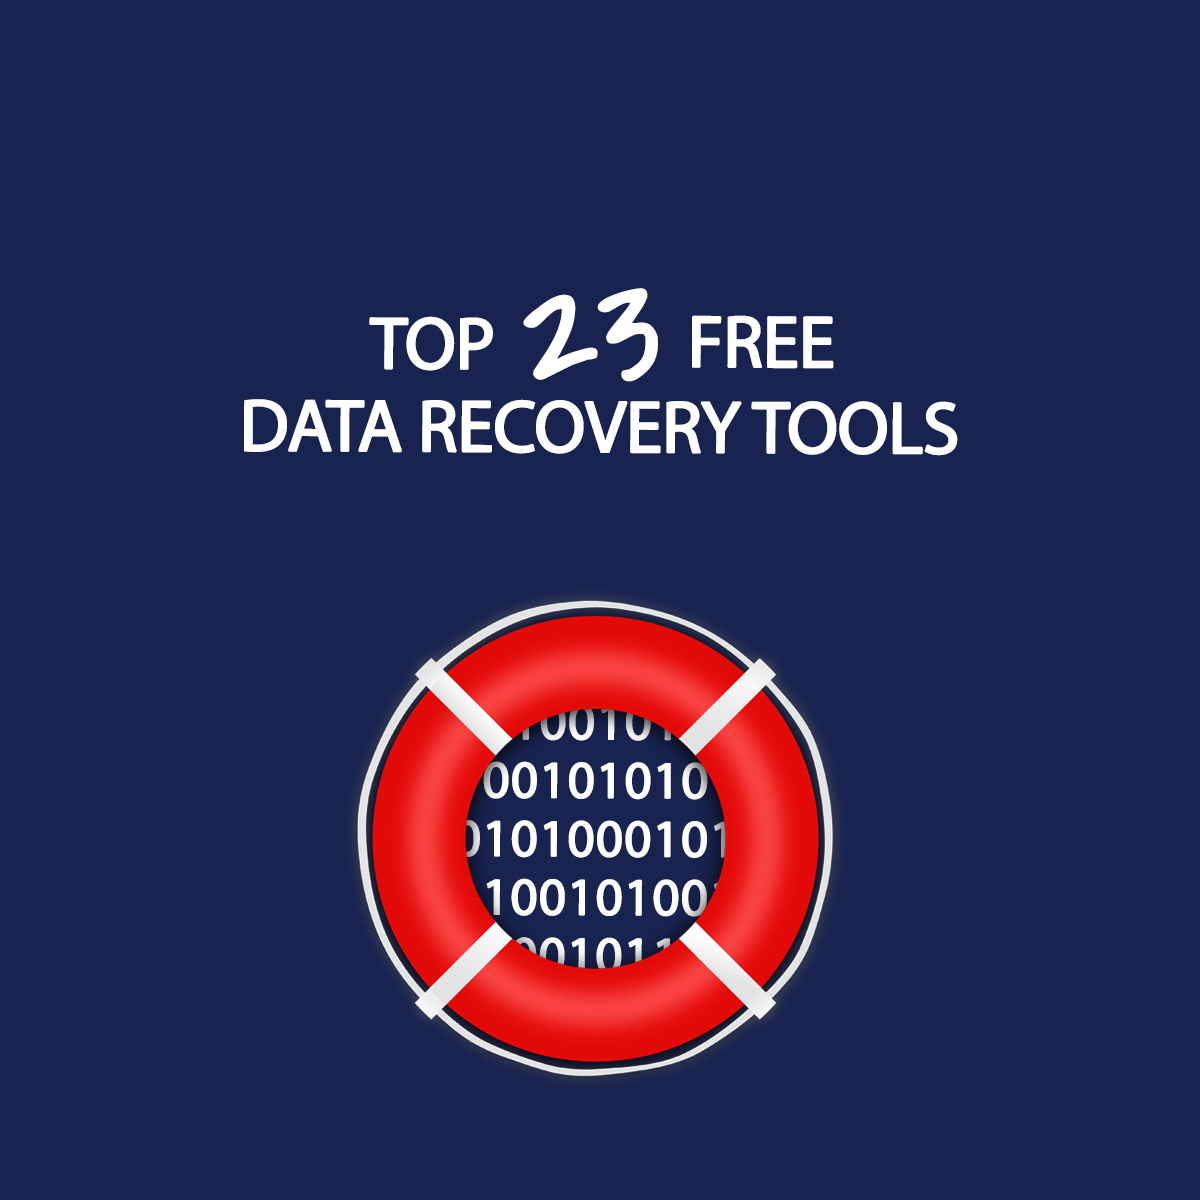 J003-Content-RecoveryTools